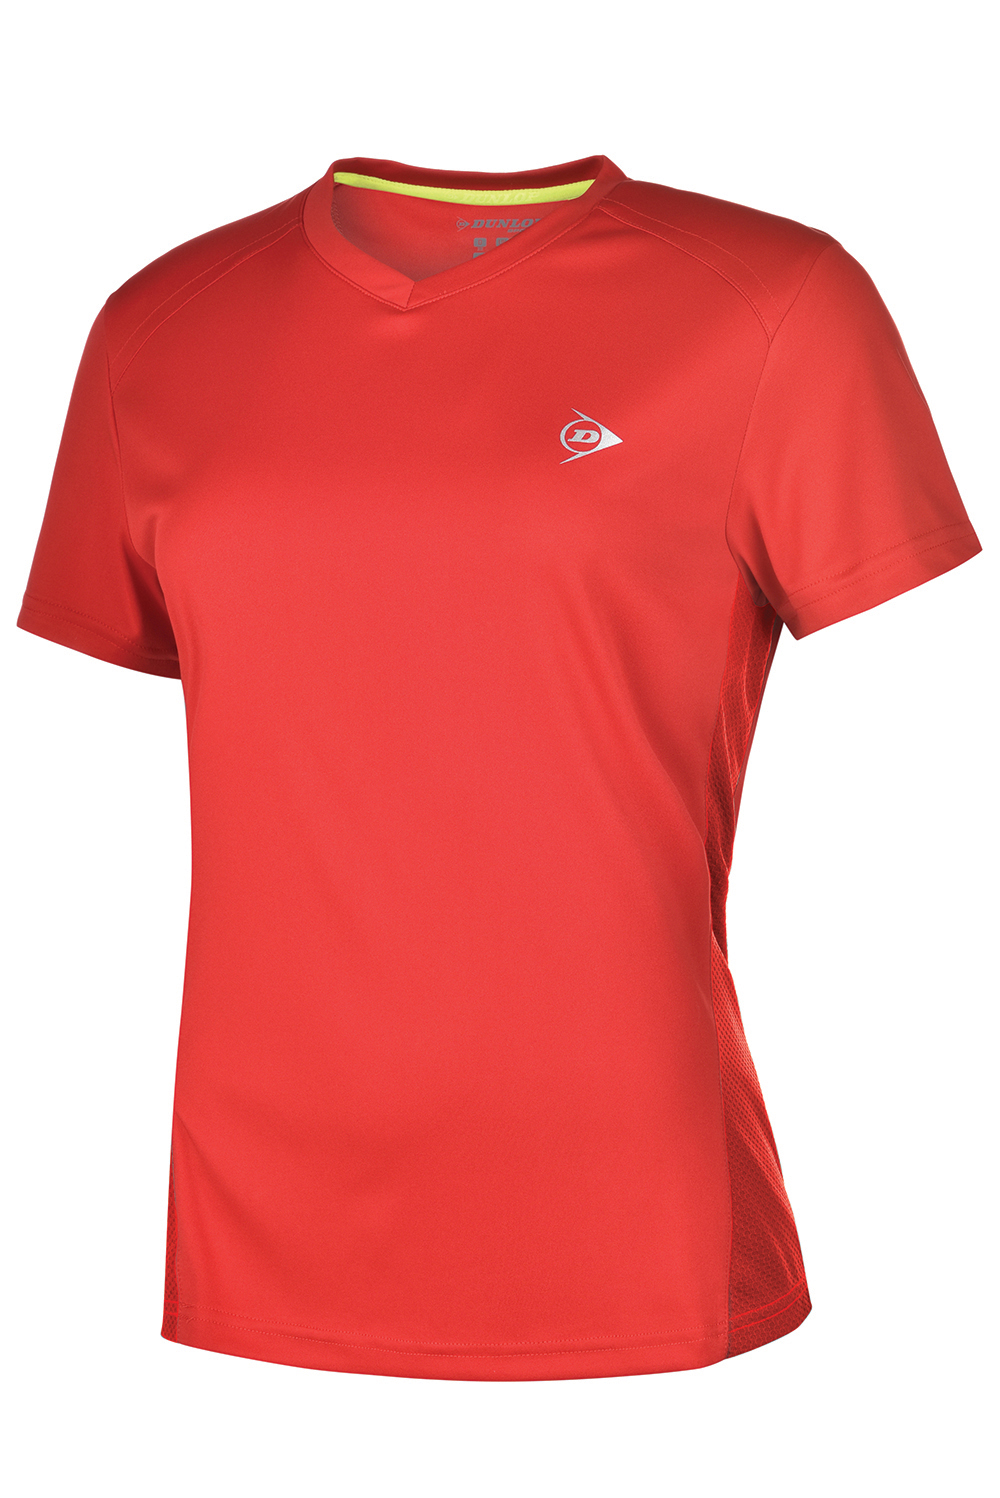 Image of   Dunlop AC Club Crew T-shirt Dames - Rood / antraciet - M